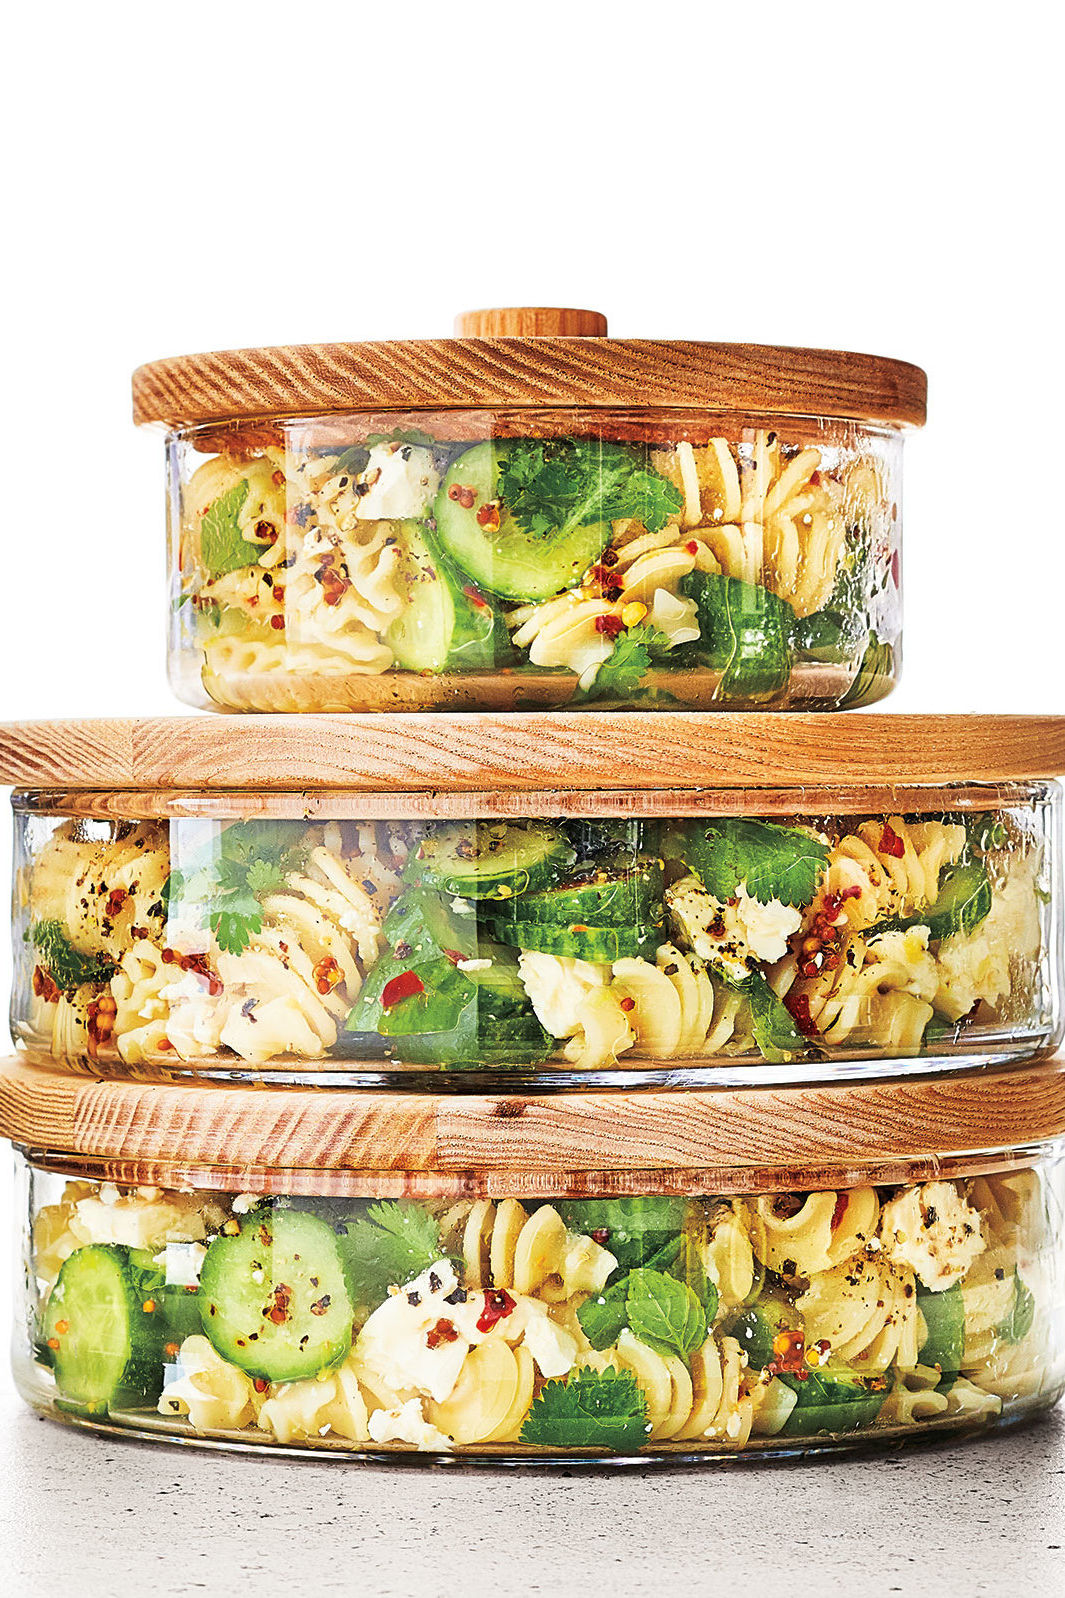 This Pasta Salad Recipe Is a Hit At Every Summer Cookout I Bring It To